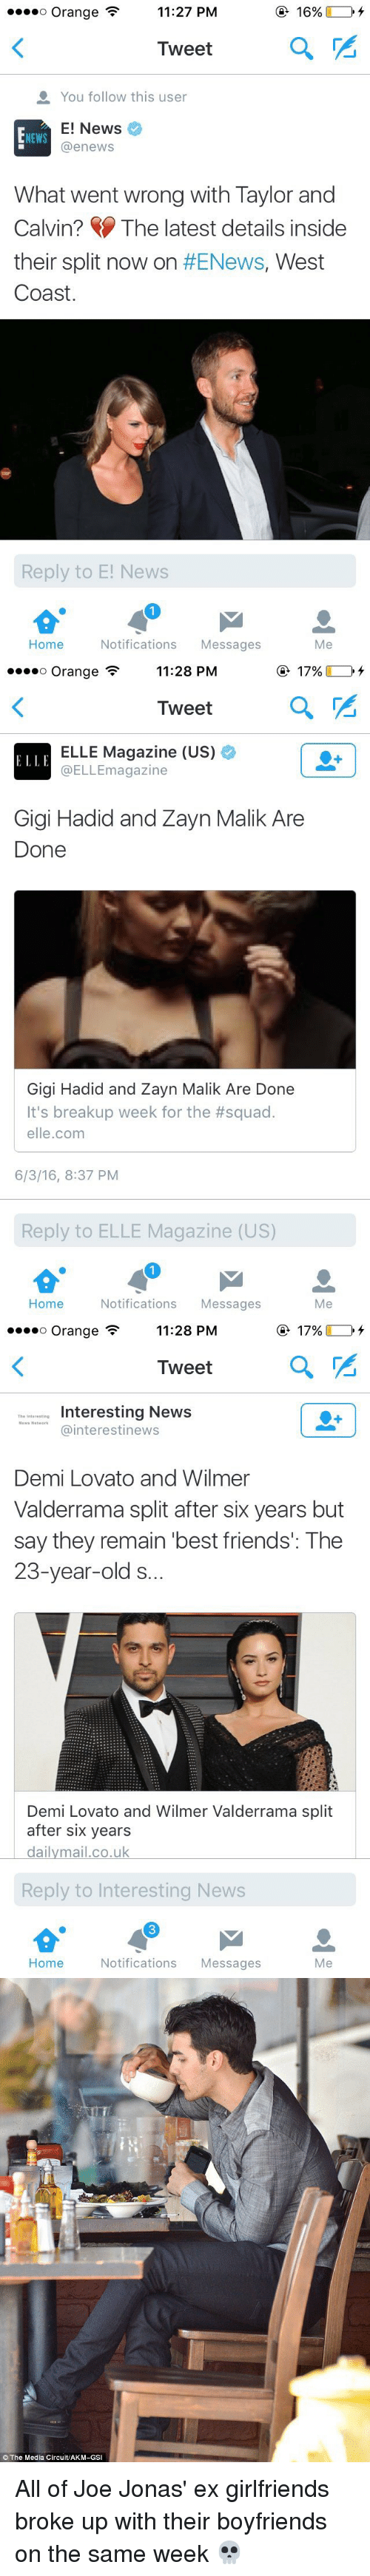 Squadding: o Orange F  11:27 PM  16%  Tweet  You follow this user  E! News  NEWS  enews  What went wrong with Taylor and  Calvin? The latest details inside  their split now on  #ENews, West  Coast.  Reply to E! News  Home  Notifications  Messages  Me   ooooo Orange F  11:28 PM  17%  Tweet  a  ELLE Magazine (US)  ELLE  @ELLEmagazine  Gigi Hadid and Zayn Malik Are  Done  Gigi Hadid and Zayn Malik Are Done  It's breakup week for the #squad.  elle.com  6/3/16, 8:37 PM  Reply to ELLE Magazine (US)  Home  Notifications  Messages  Me   ooooo Orange F  11:28 PM  17%  Tweet  a  Interesting News  Cainterestinews  Demi Lovato and Wilmer  Valderrama split after six years but  say they remain best friends': The  23-year-old S.  Demi Lovato and Wilmer Valderrama split  after six years  dailymail.co.uk  Reply to Interesting News  Home  Notifications  Messages  Me   The Media Circuit/AKM-GSI All of Joe Jonas' ex girlfriends broke up with their boyfriends on the same week 💀